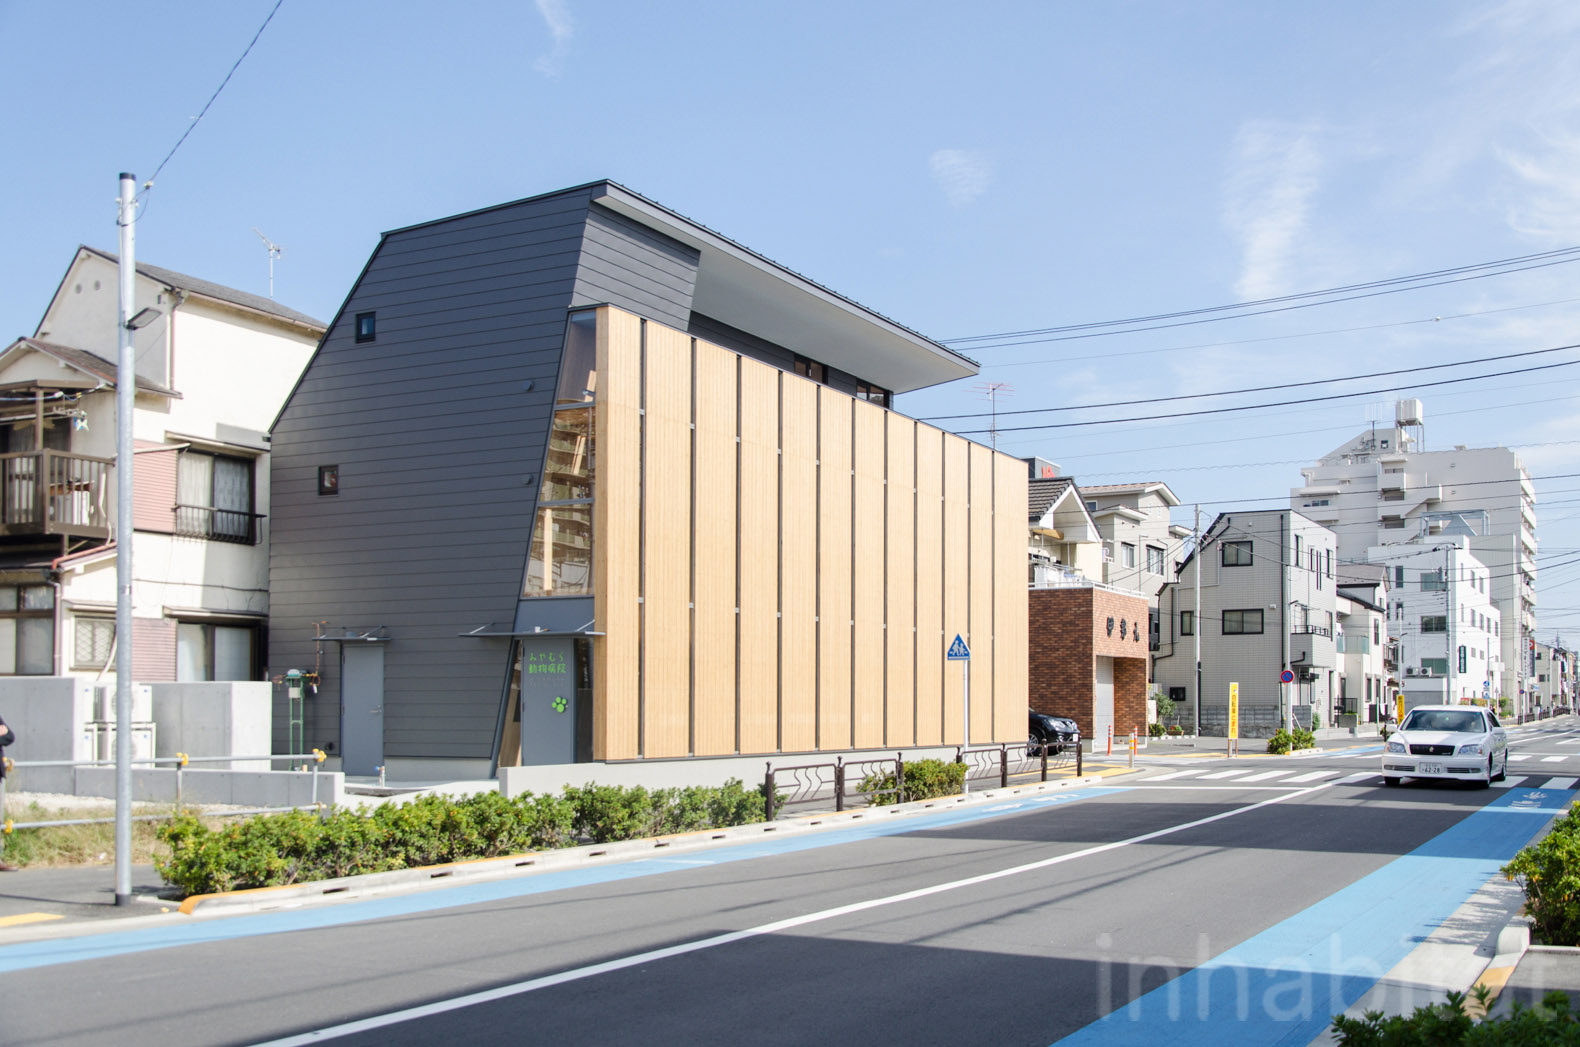 Tokyou0027s First Multistory Building Made Of 100% Wood Overcomes Rigid Fire  Regulations